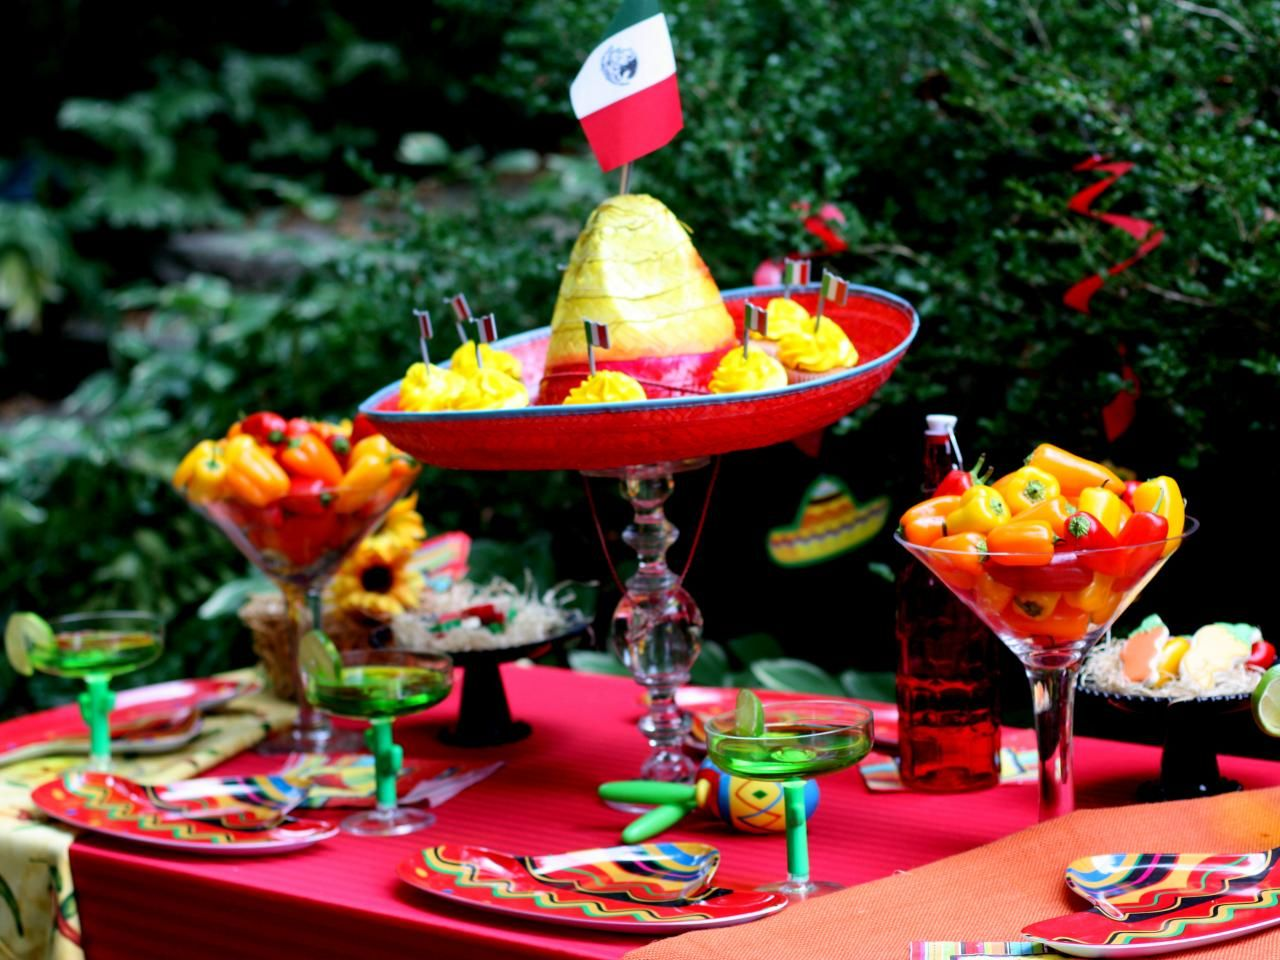 Sizzling themes for an outdoor summer party margarita